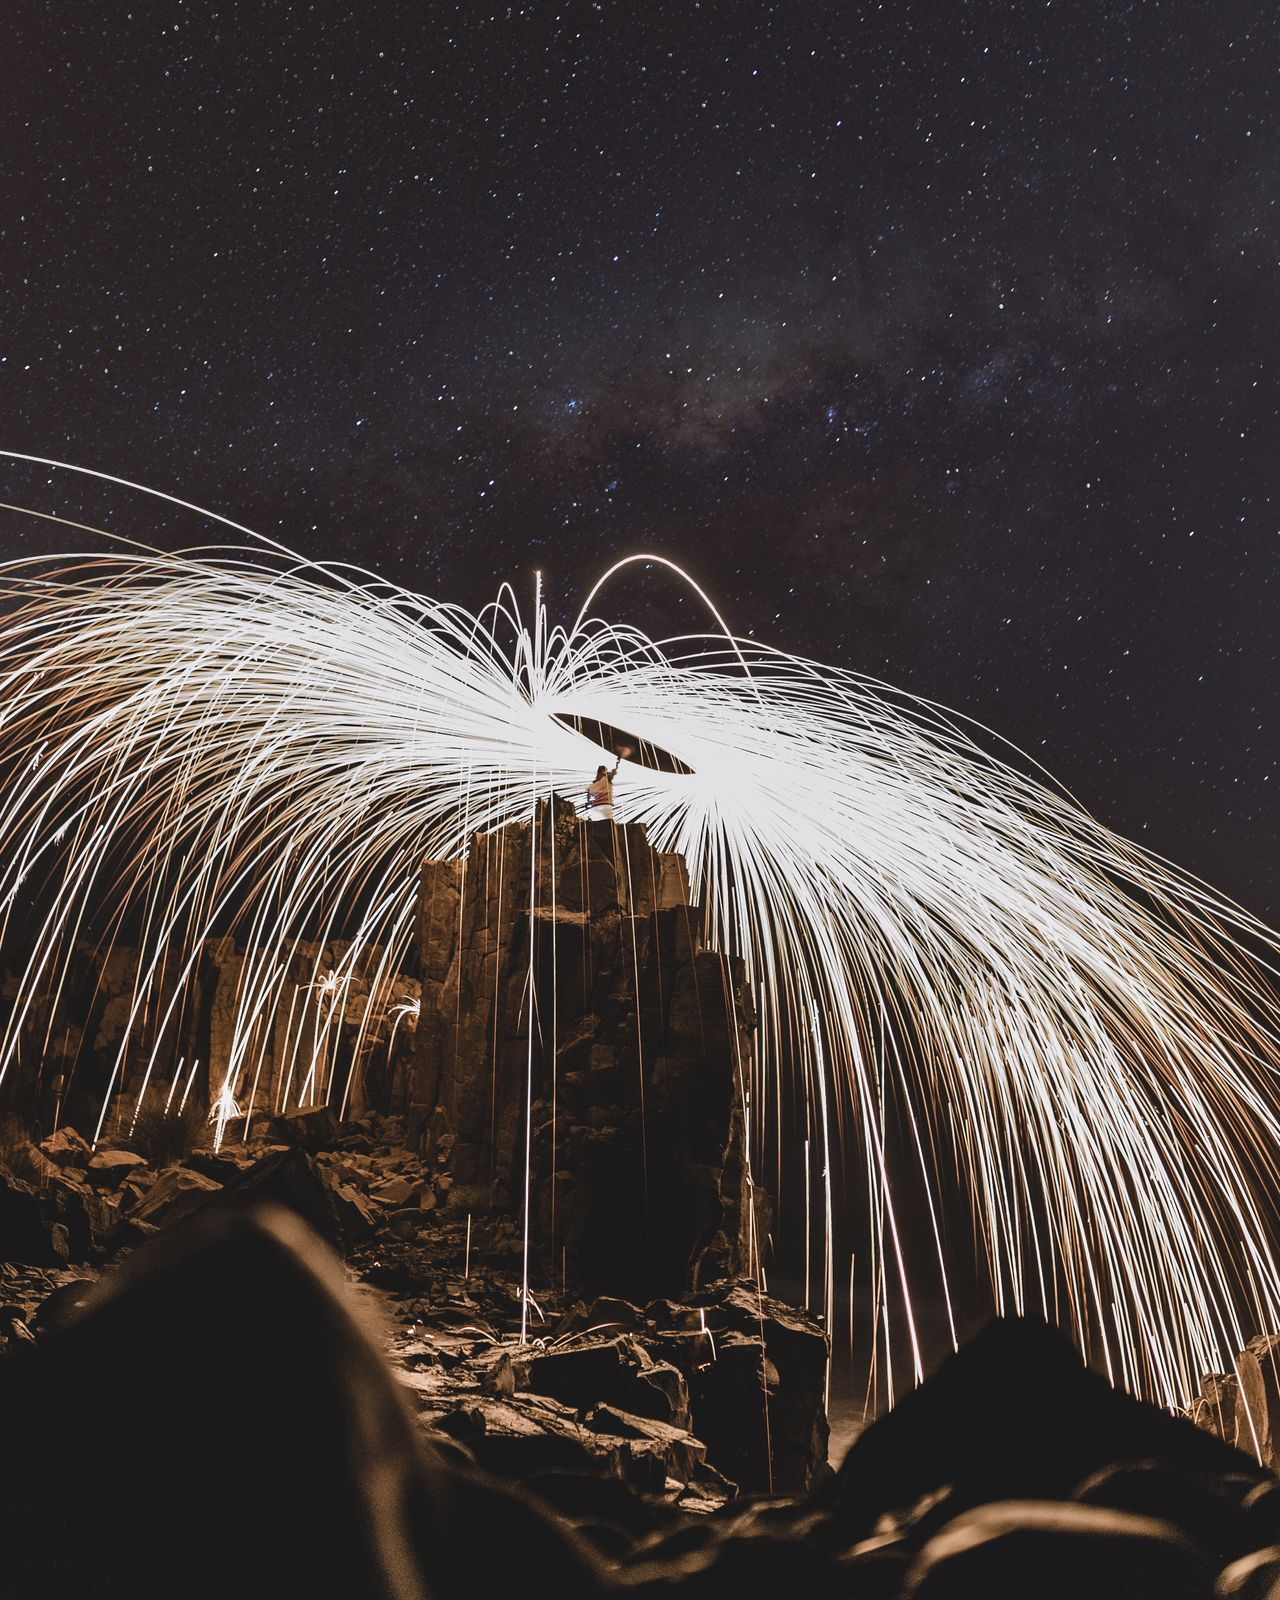 The Great Outdoors With Adobe Astrophotography Milkyway Stars Steel Wool Light Painting Rocks Sydney The Great Outdoors - 2016 EyeEm Awards Adventure Club EyeEm X Adobe - The Great Outdoors